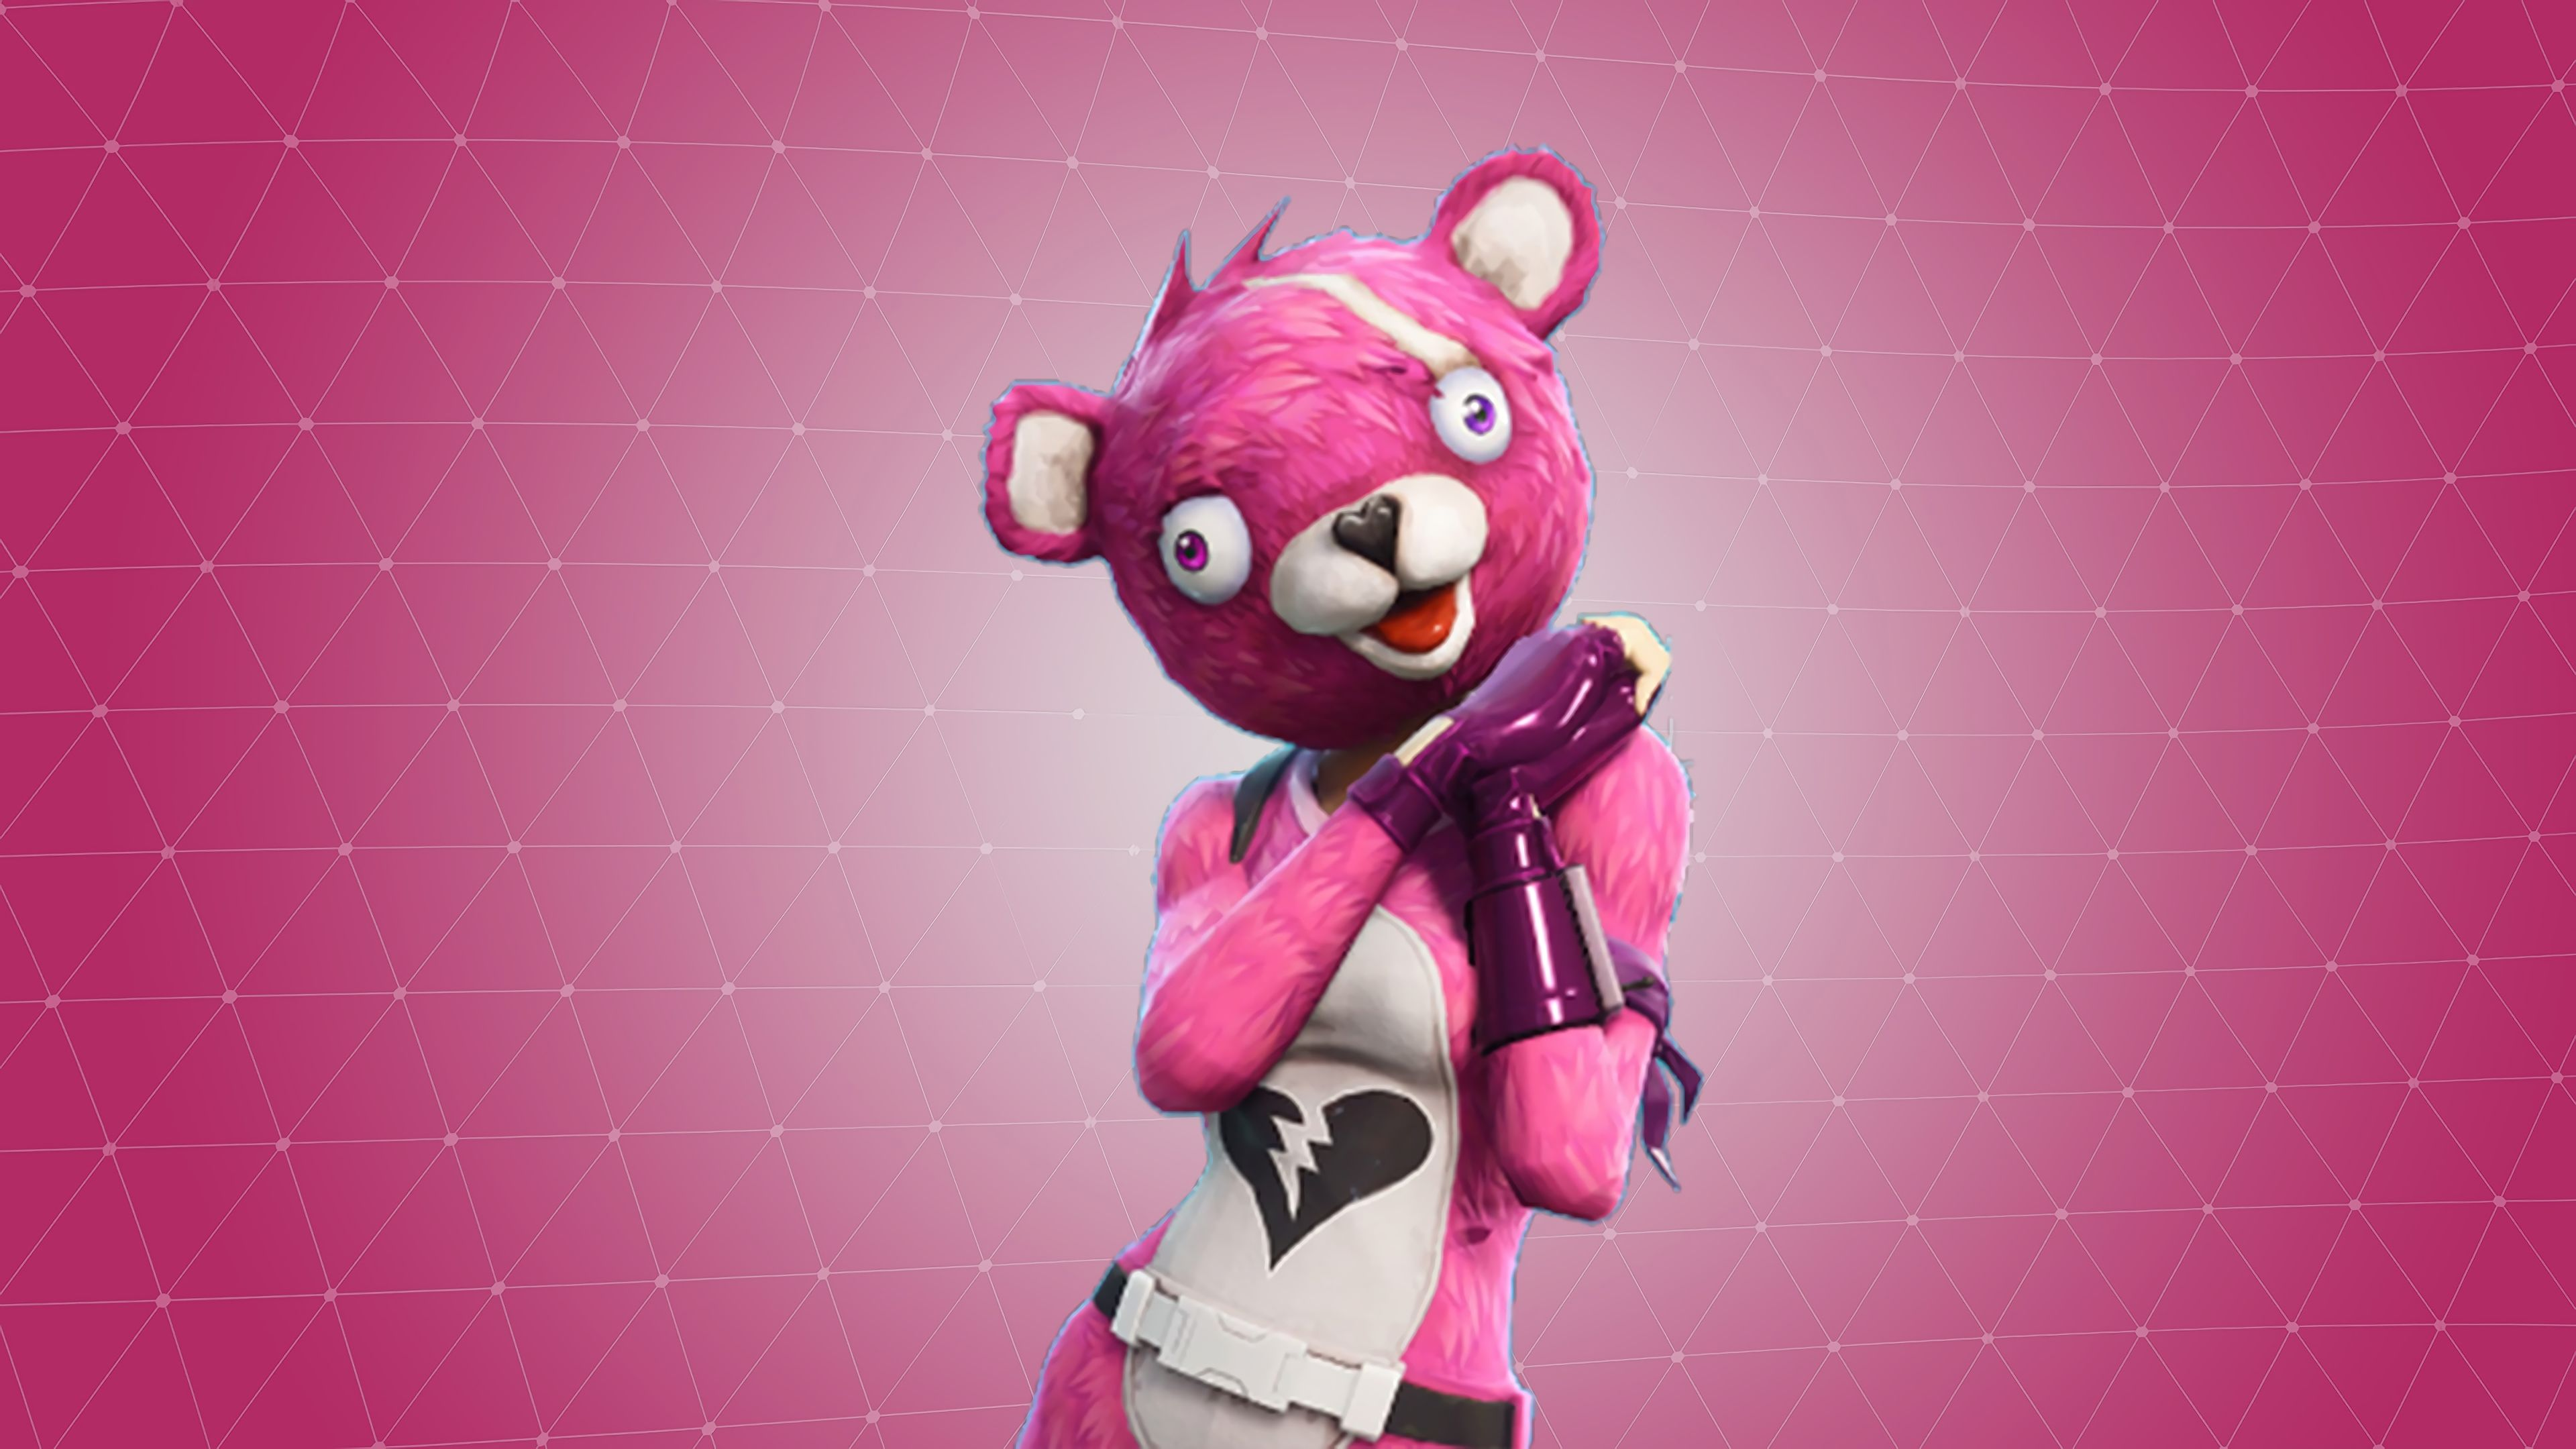 Pink Bear Fortnite Skin Wallpapers Top Free Pink Bear Fortnite Skin Backgrounds Wallpaperaccess